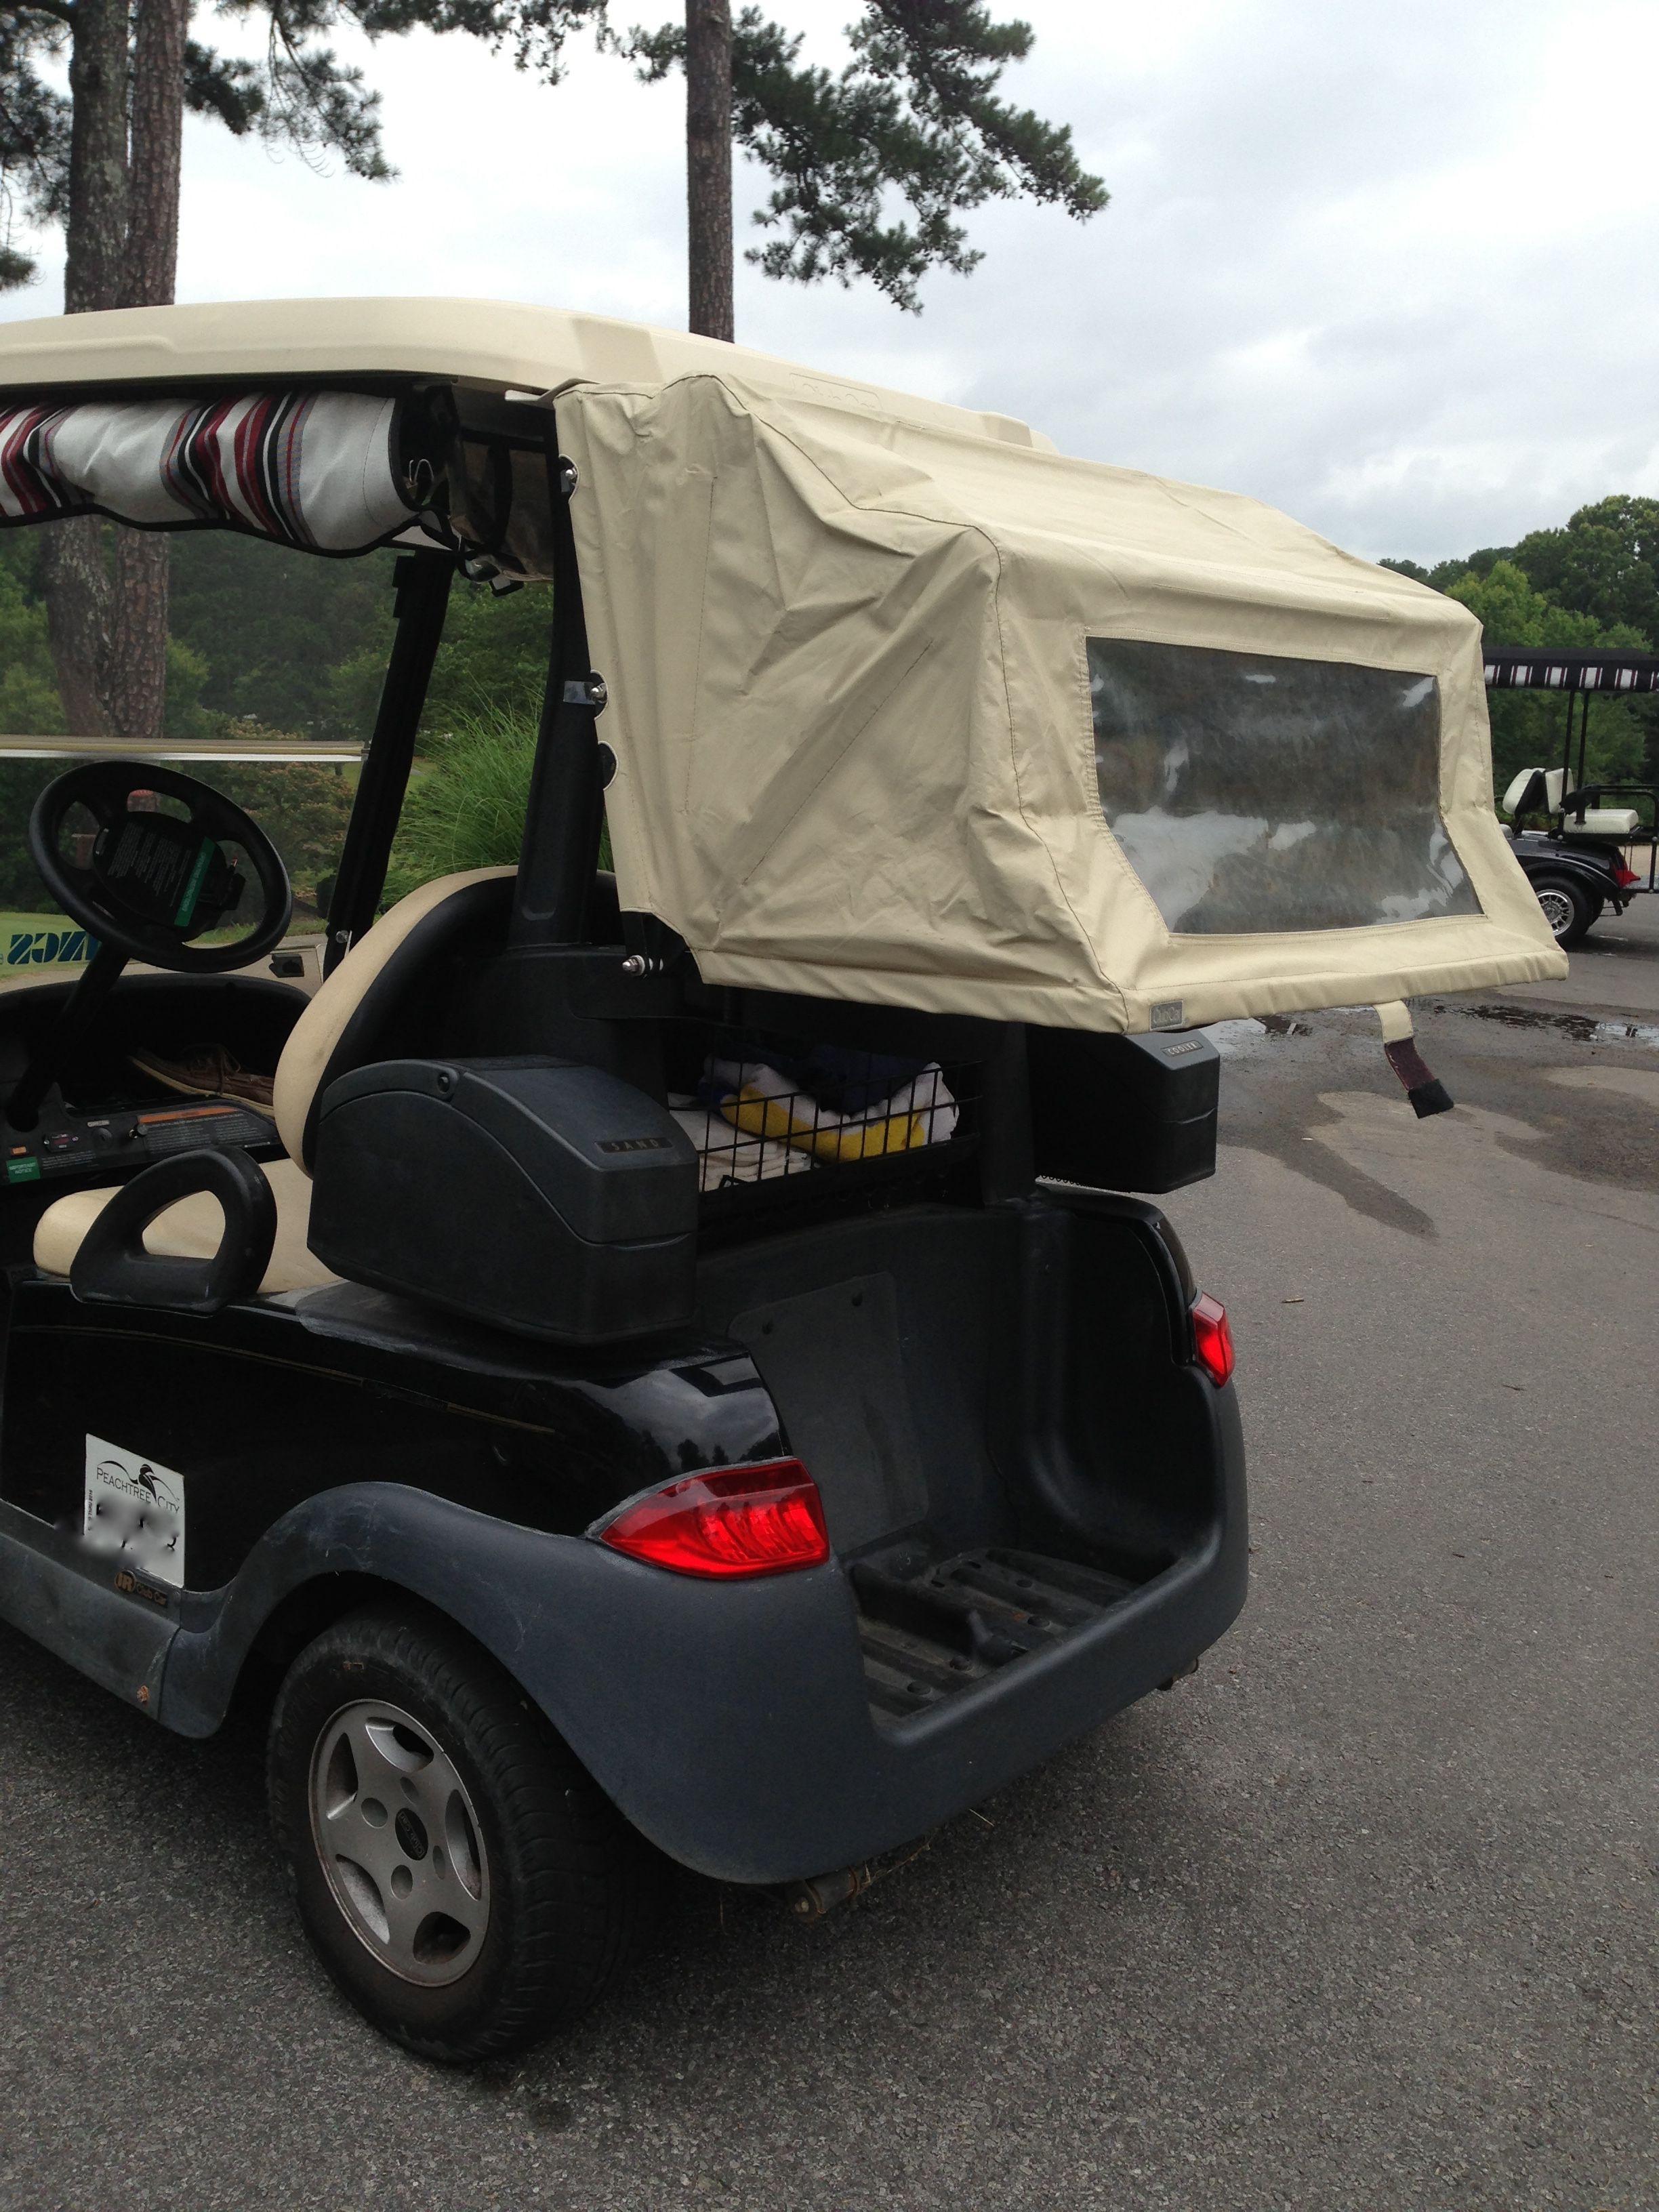 Golf Bag Rack Cart Holder For 2 Or 4 Seat Trailer Coupler Parts Diagram Http Wwwebaycom Itm Freedompivot A Canopy Your Bags And Clubs Protects Equipment In The Rain Without Interfering With Easy Access Clubcargolfcart